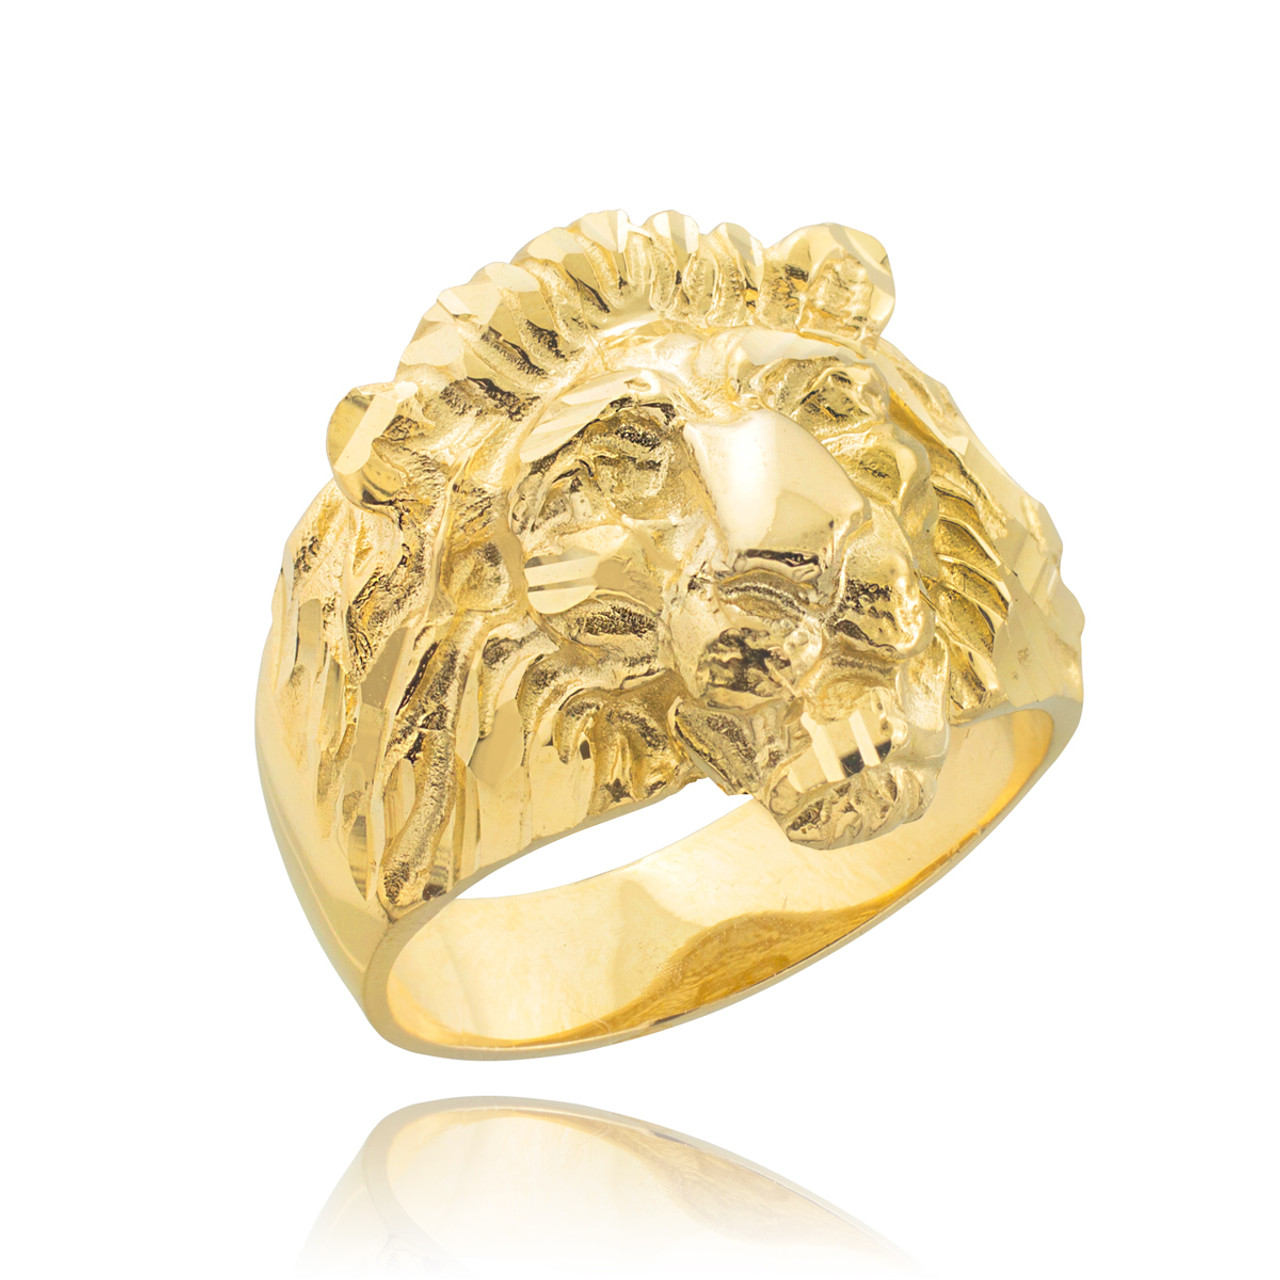 rings gucci lion ring product qafhjhv head endource